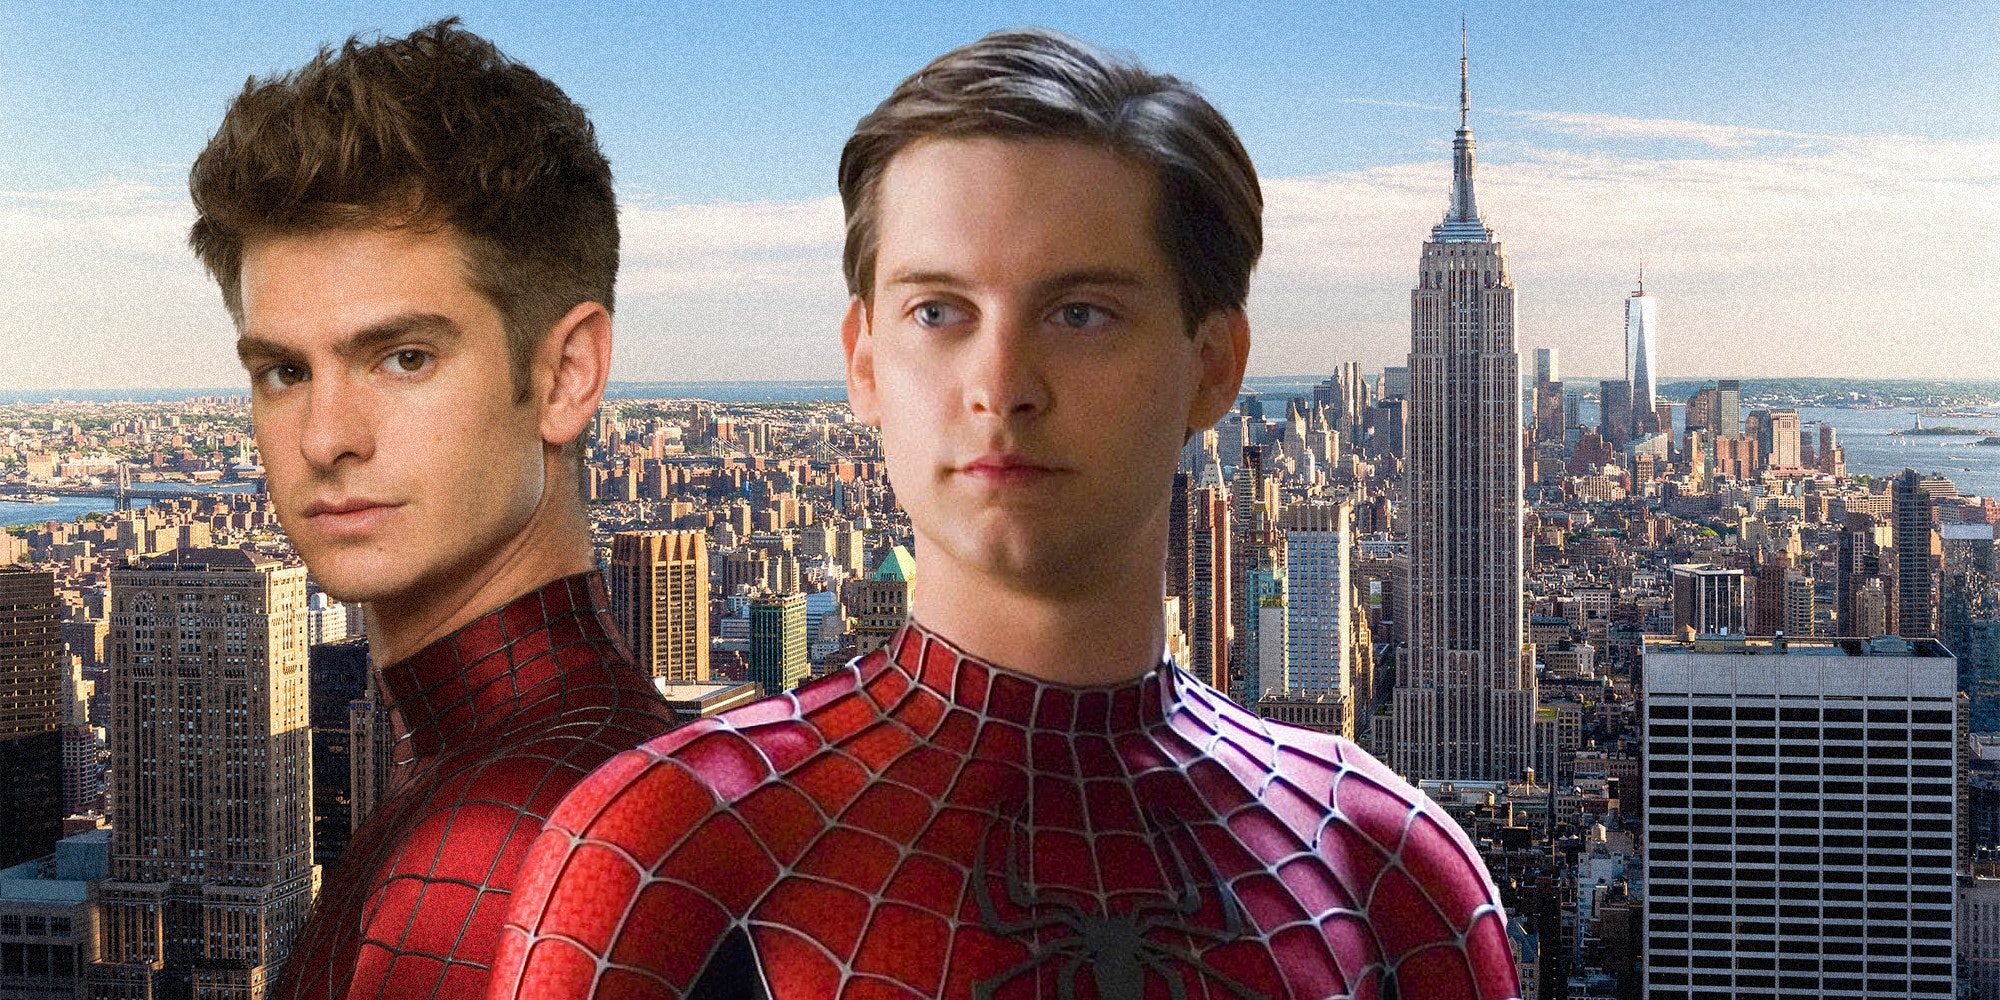 Is Marvel planning a live-action 'Spider-Verse' with Tom Holland?